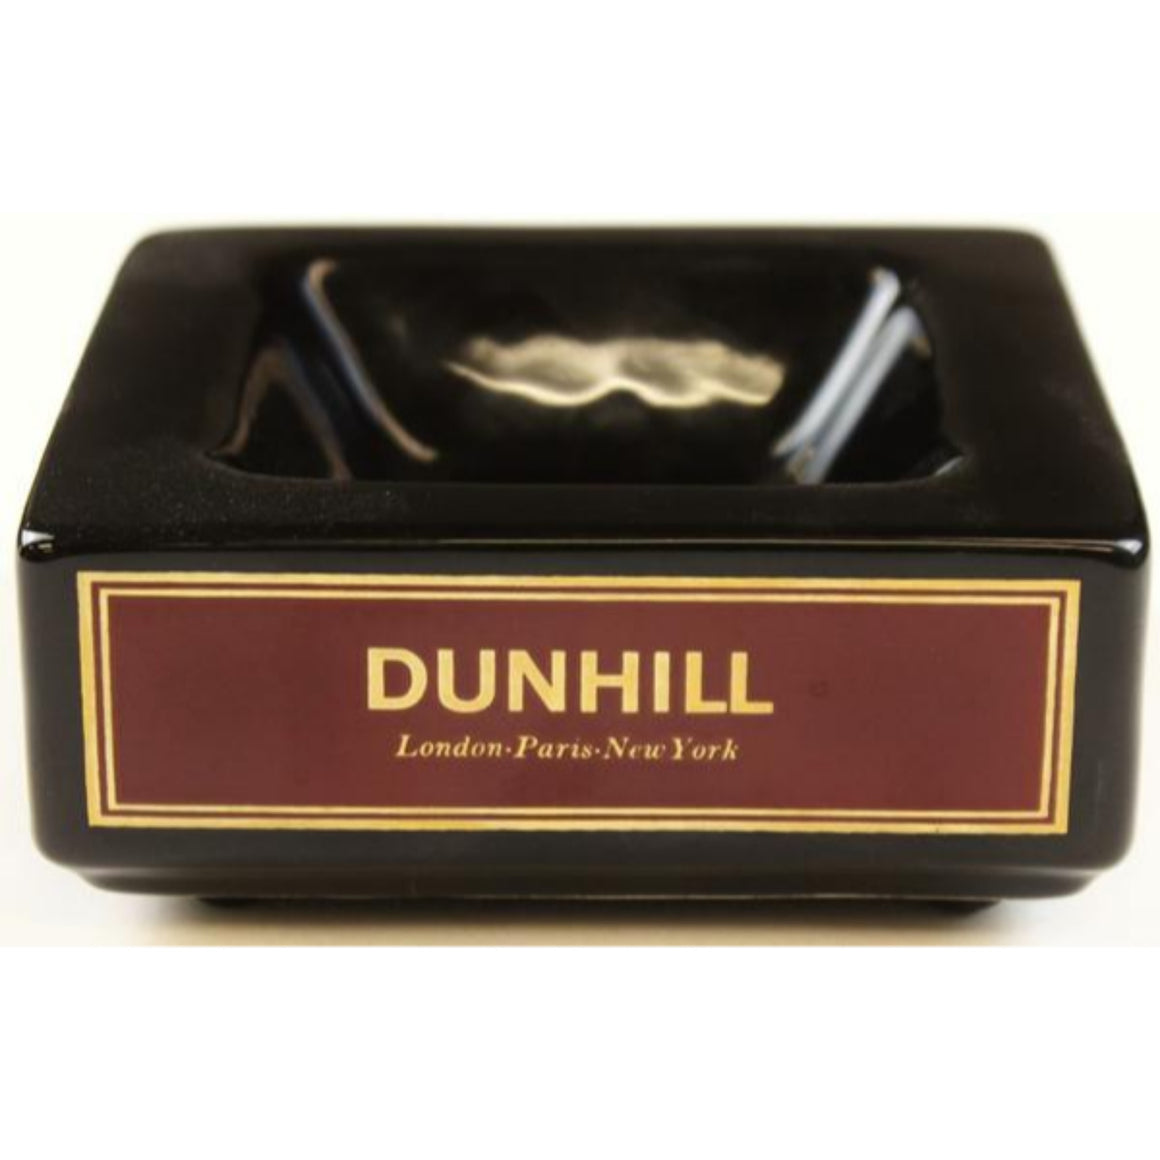 Dunhill London Wade Porcelain c.1960's Ashtray